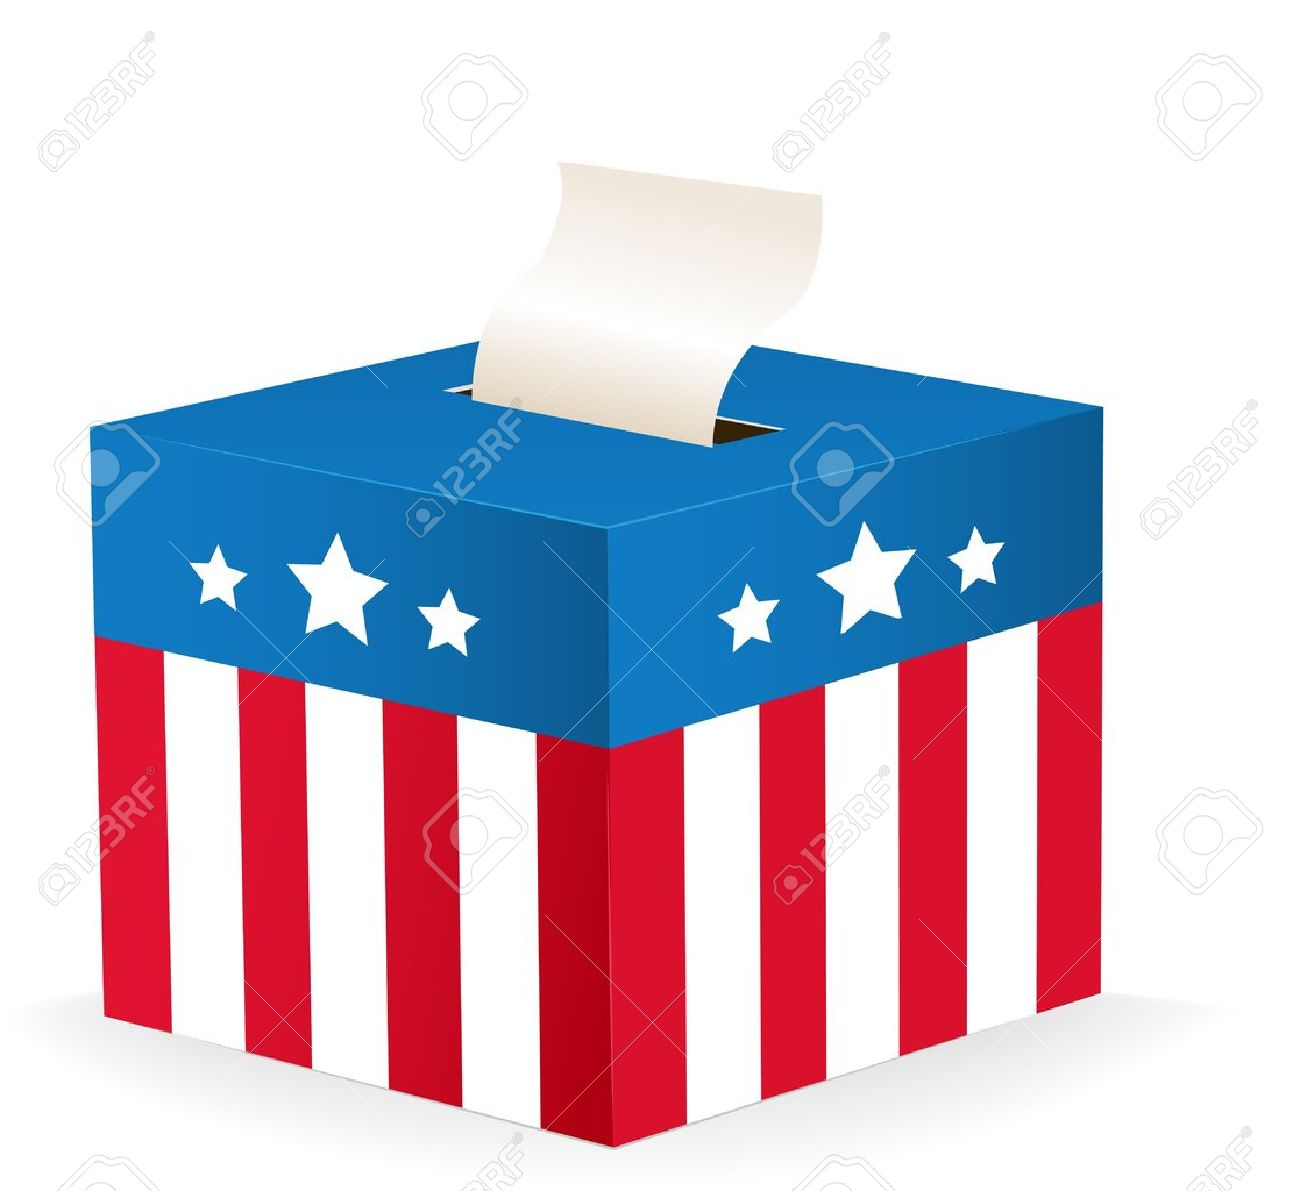 Digitally Generated Image Of A Ballot Box With Stars And Stripes.